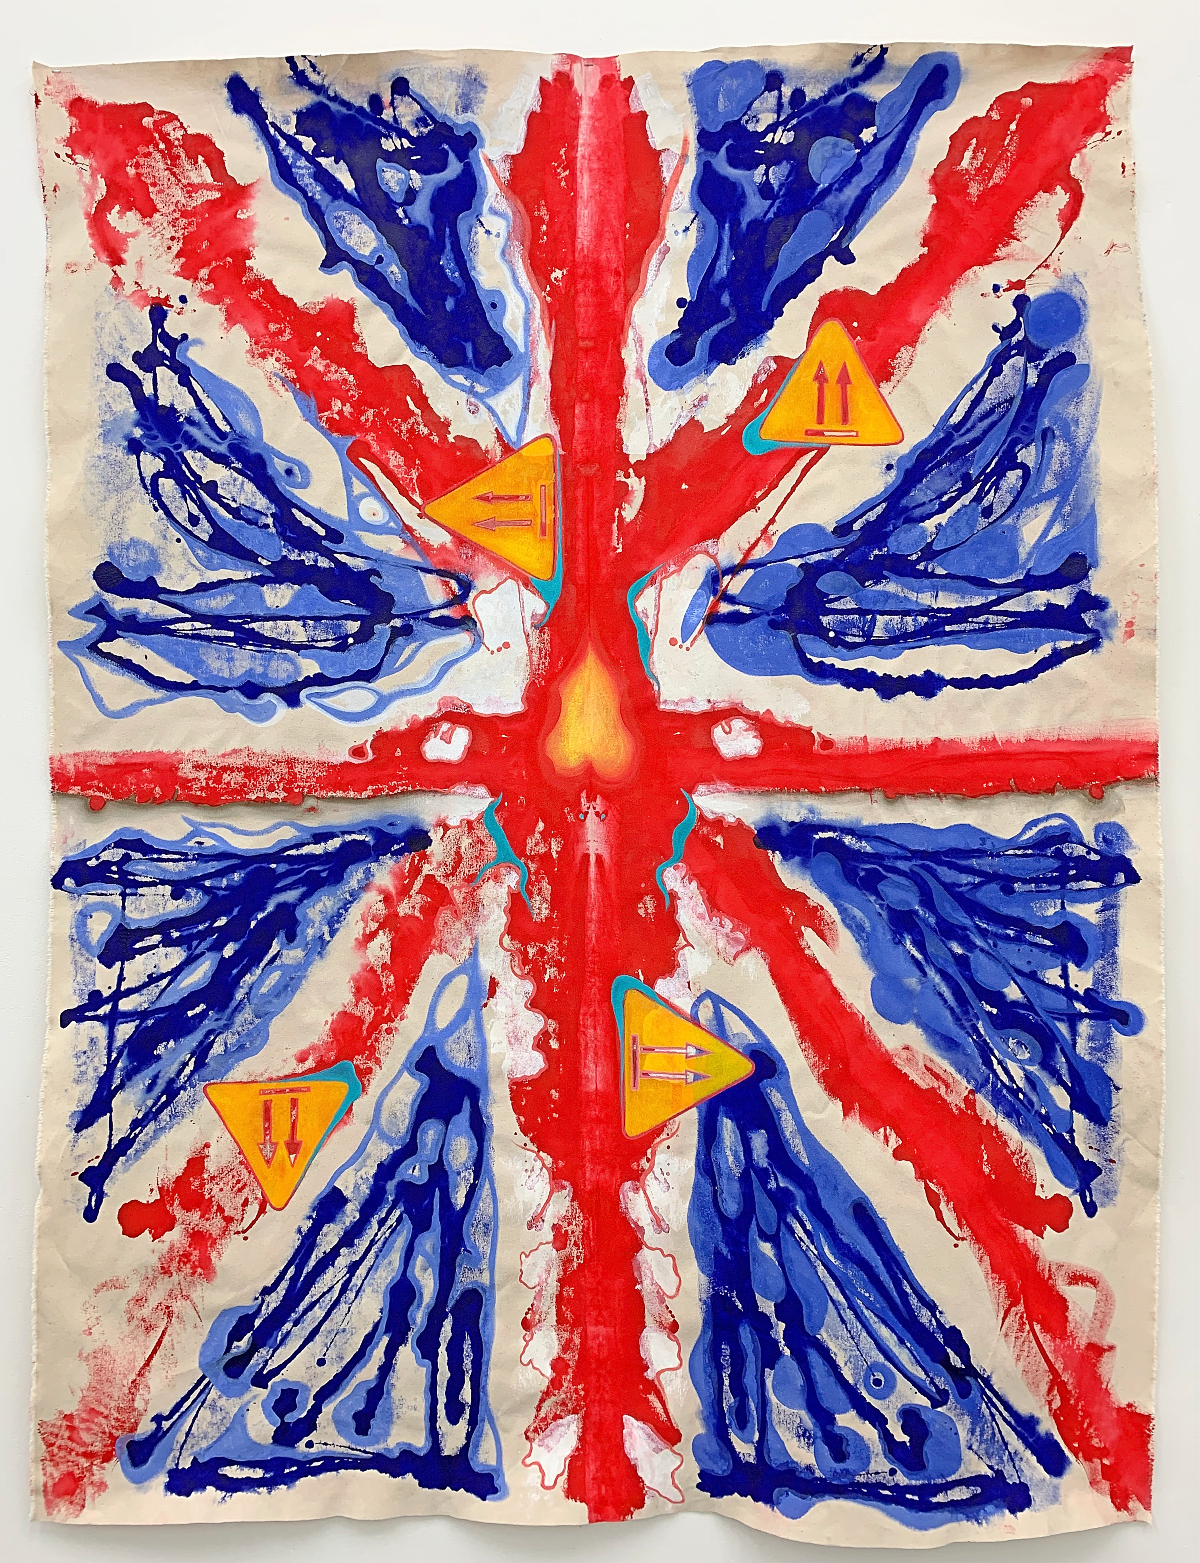 Union Jack painting by Brandy Saturley - Royal College of Art